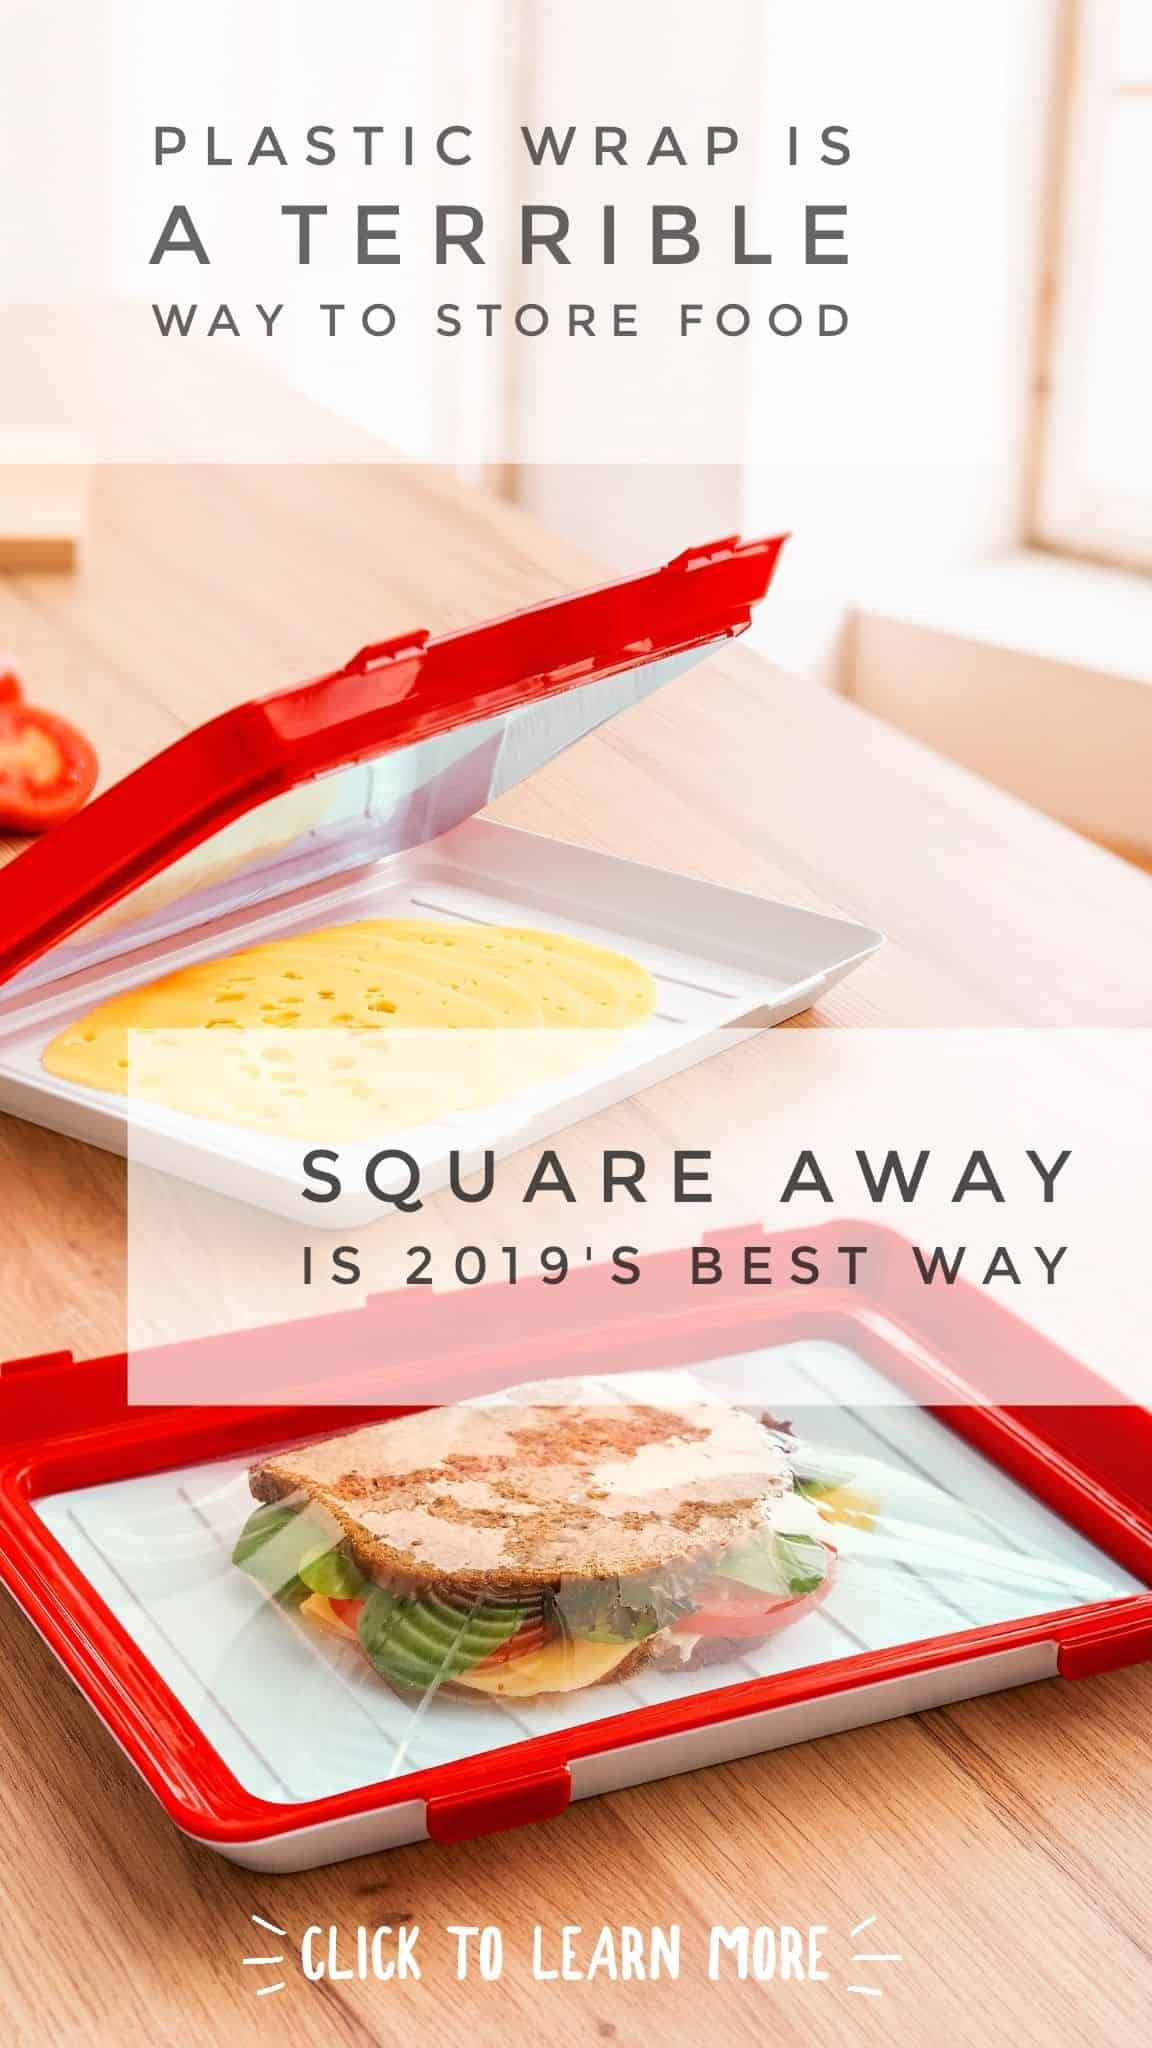 2019 Square Away Food Storage Containers Pin